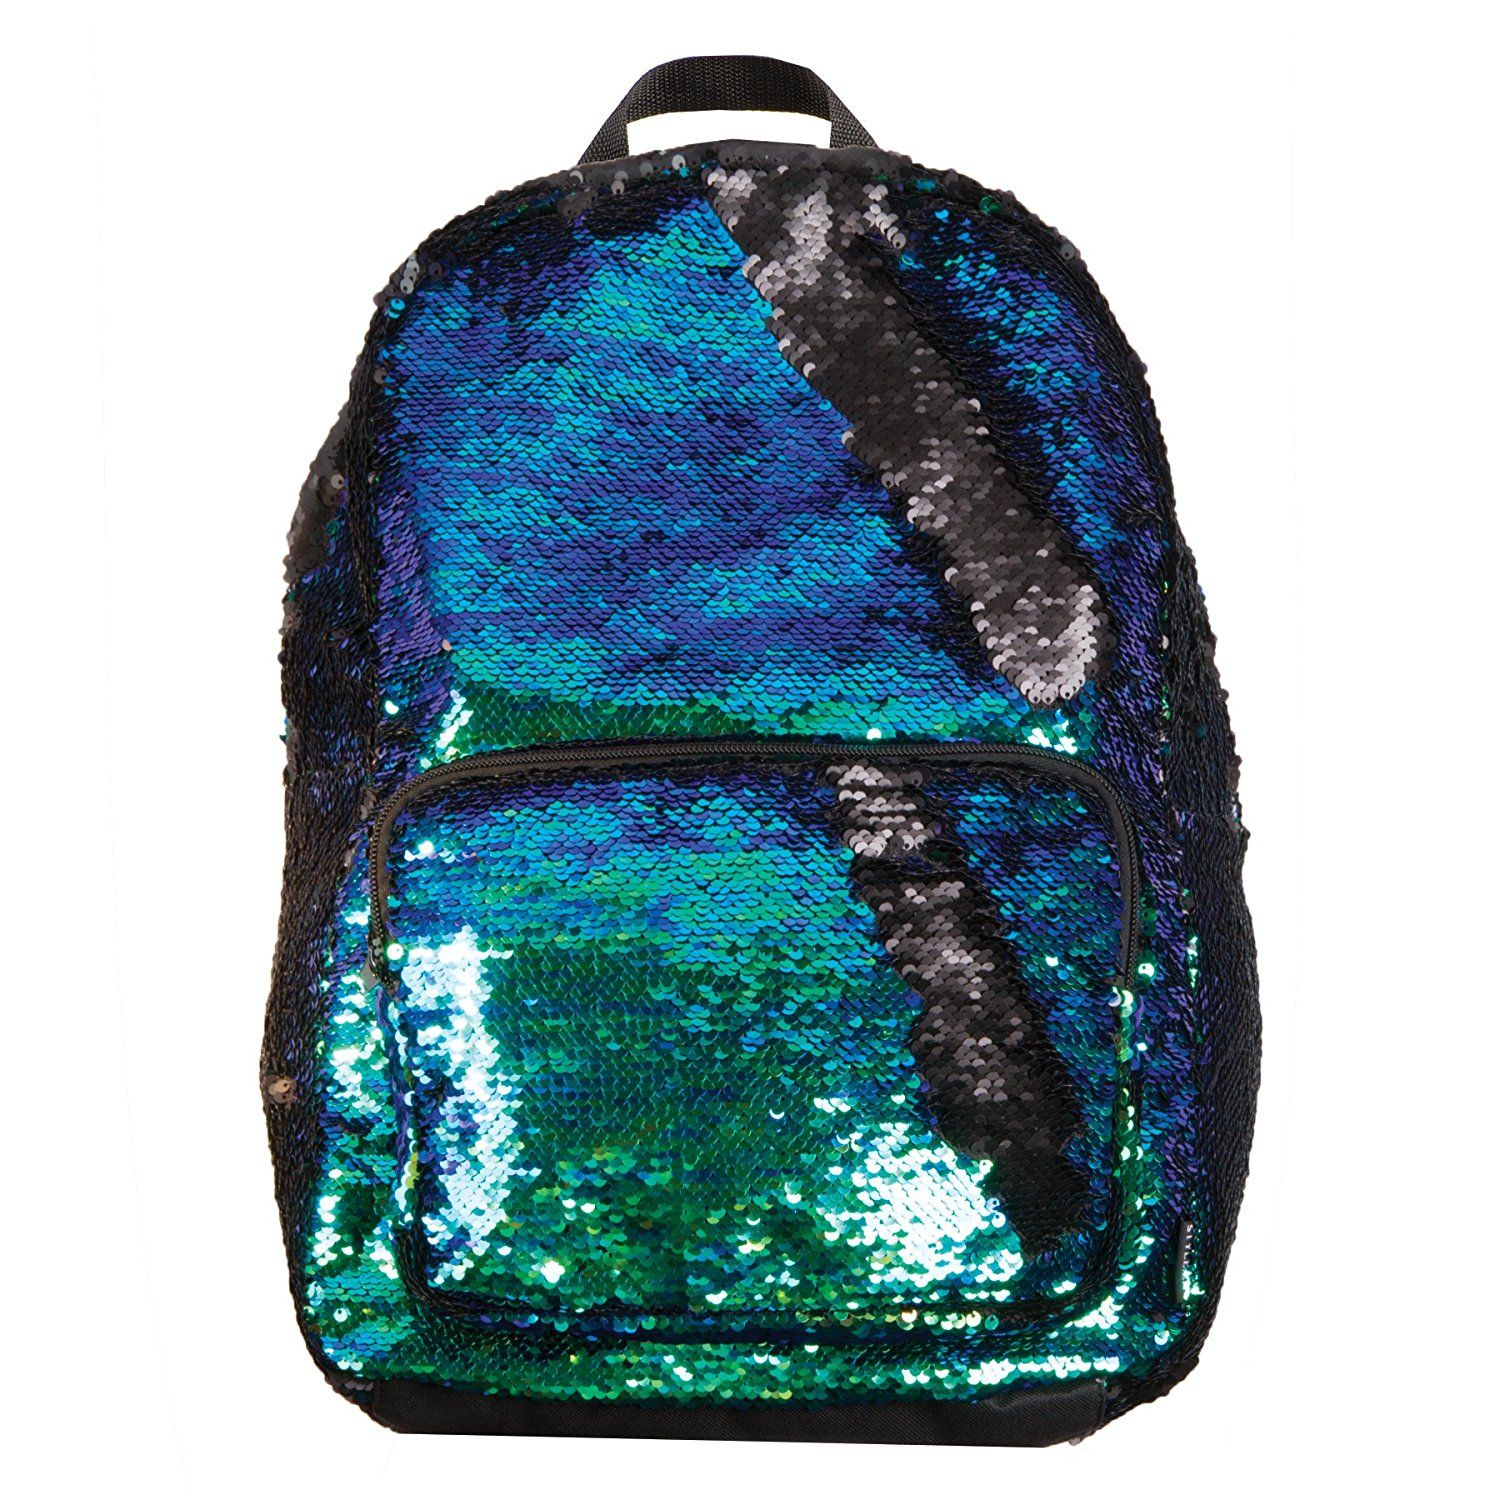 Reversible Sequin Iridescent to Black Mermaid Fashion Backpack